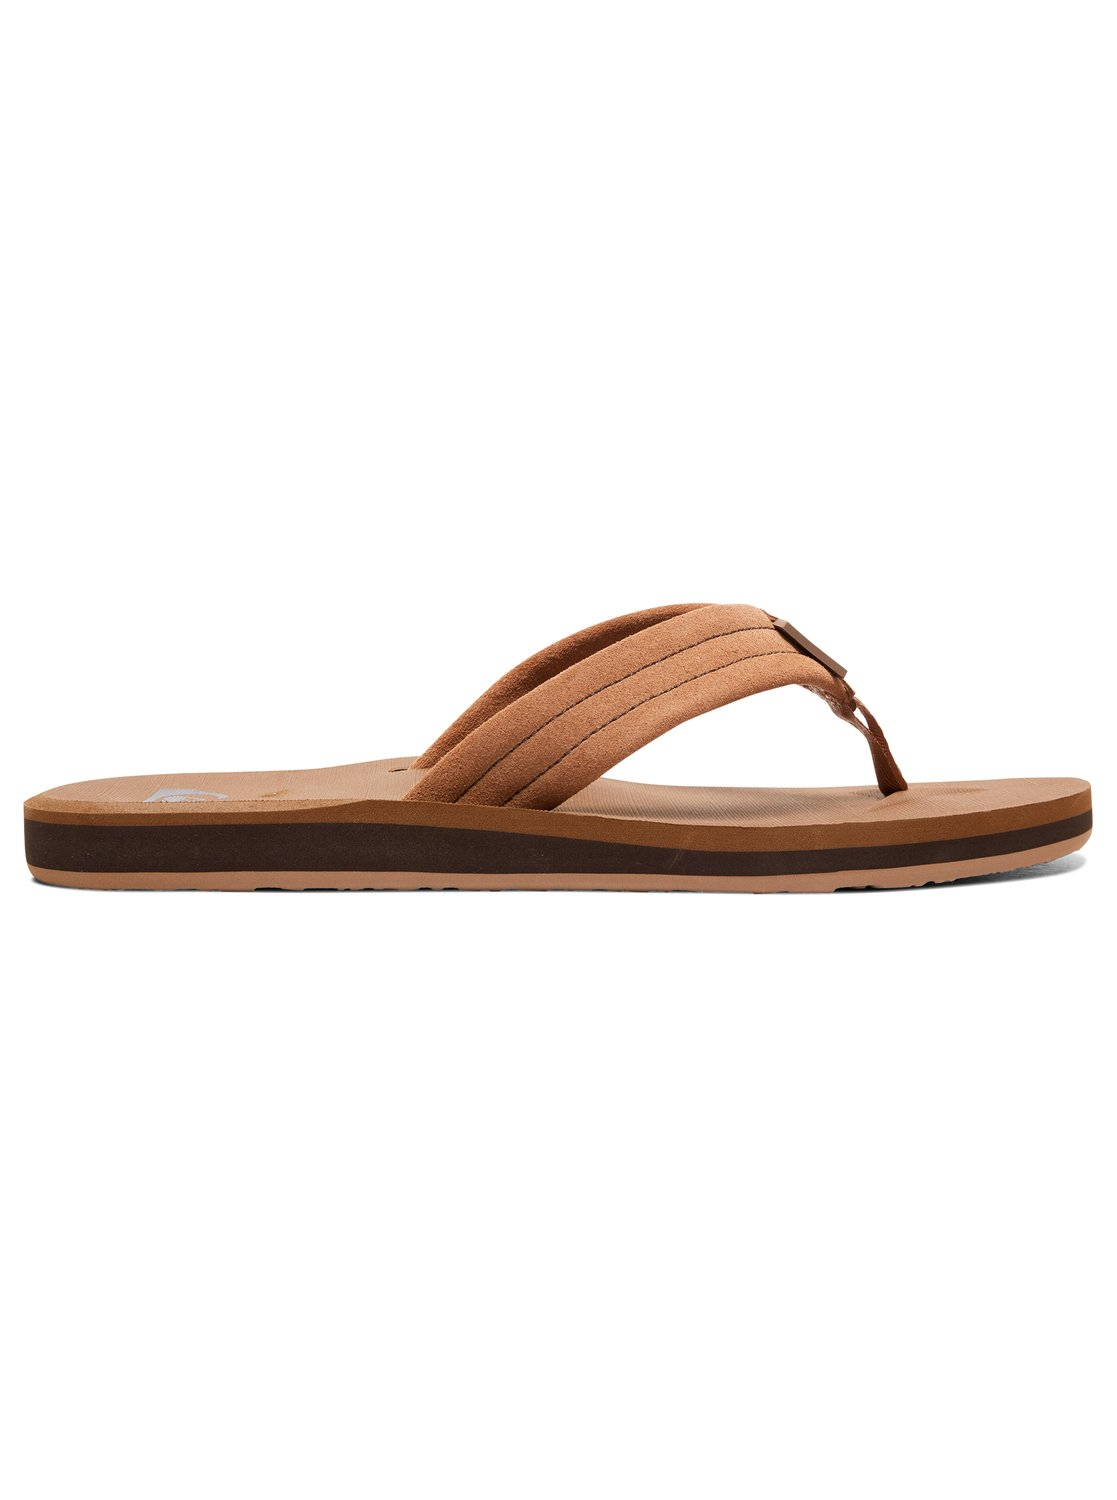 Carver Leather Sandals 888256778566 Quiksilver